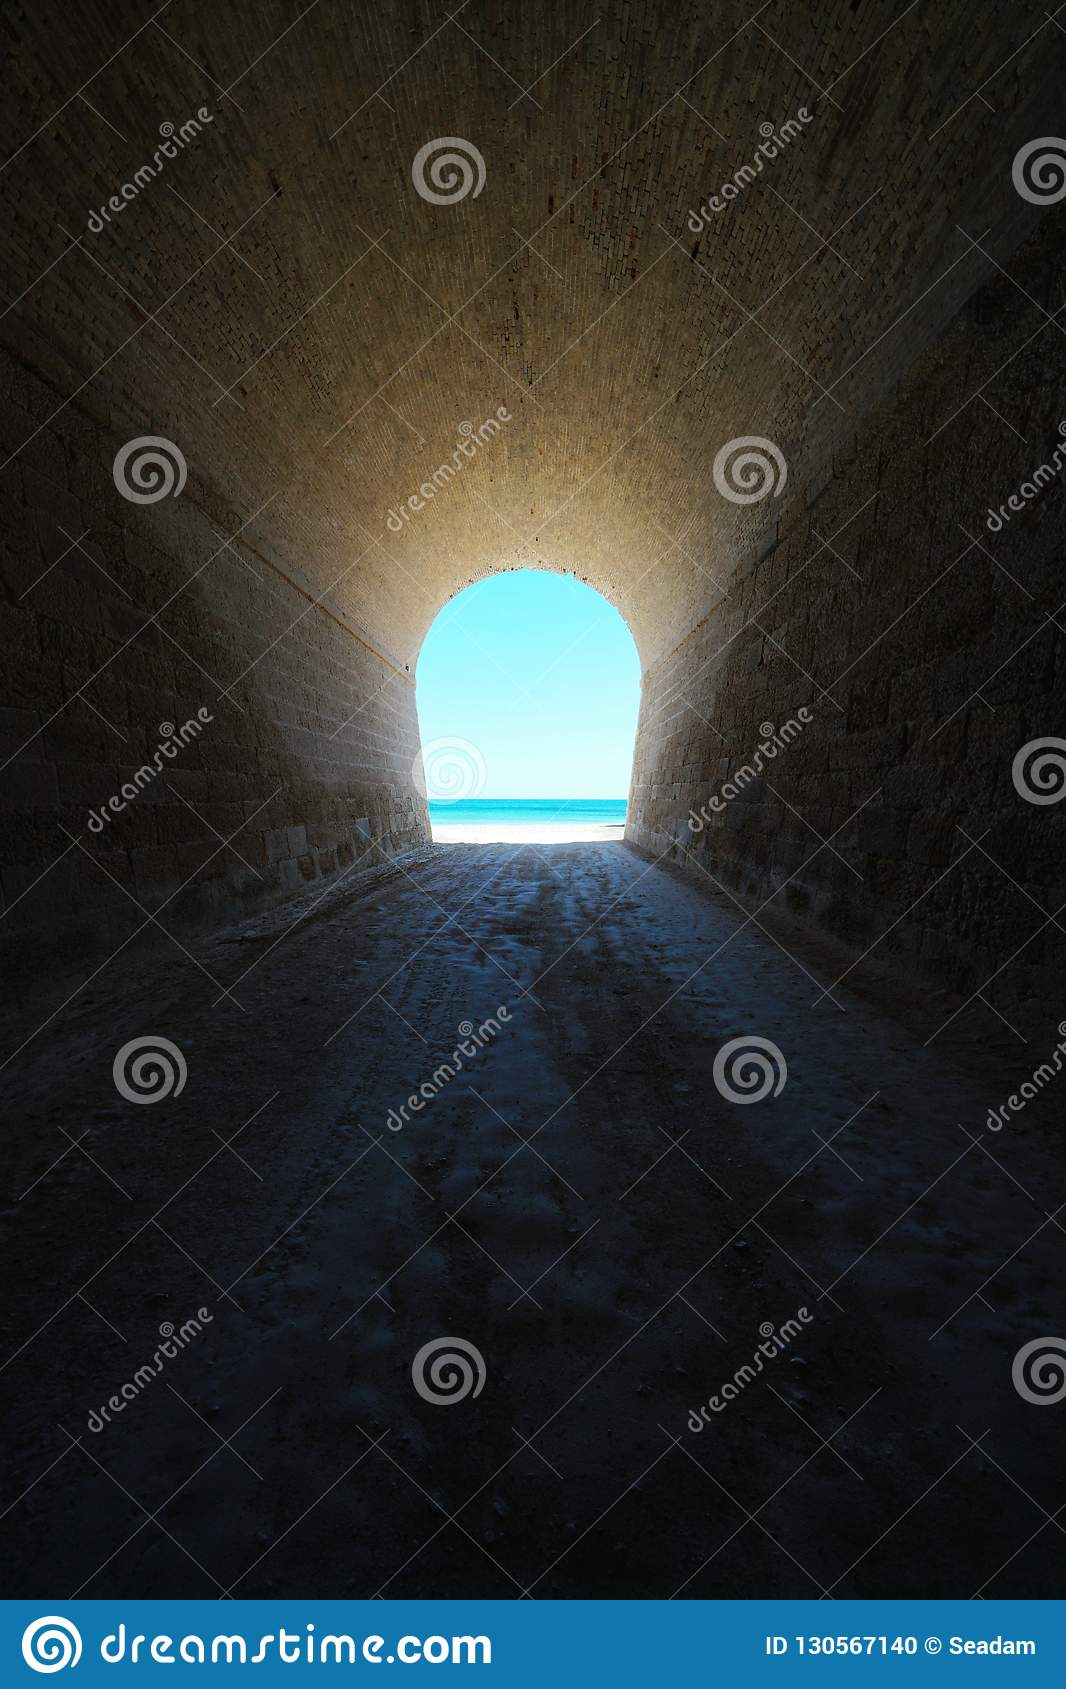 Inside tunnel that leads to seashore natural scene